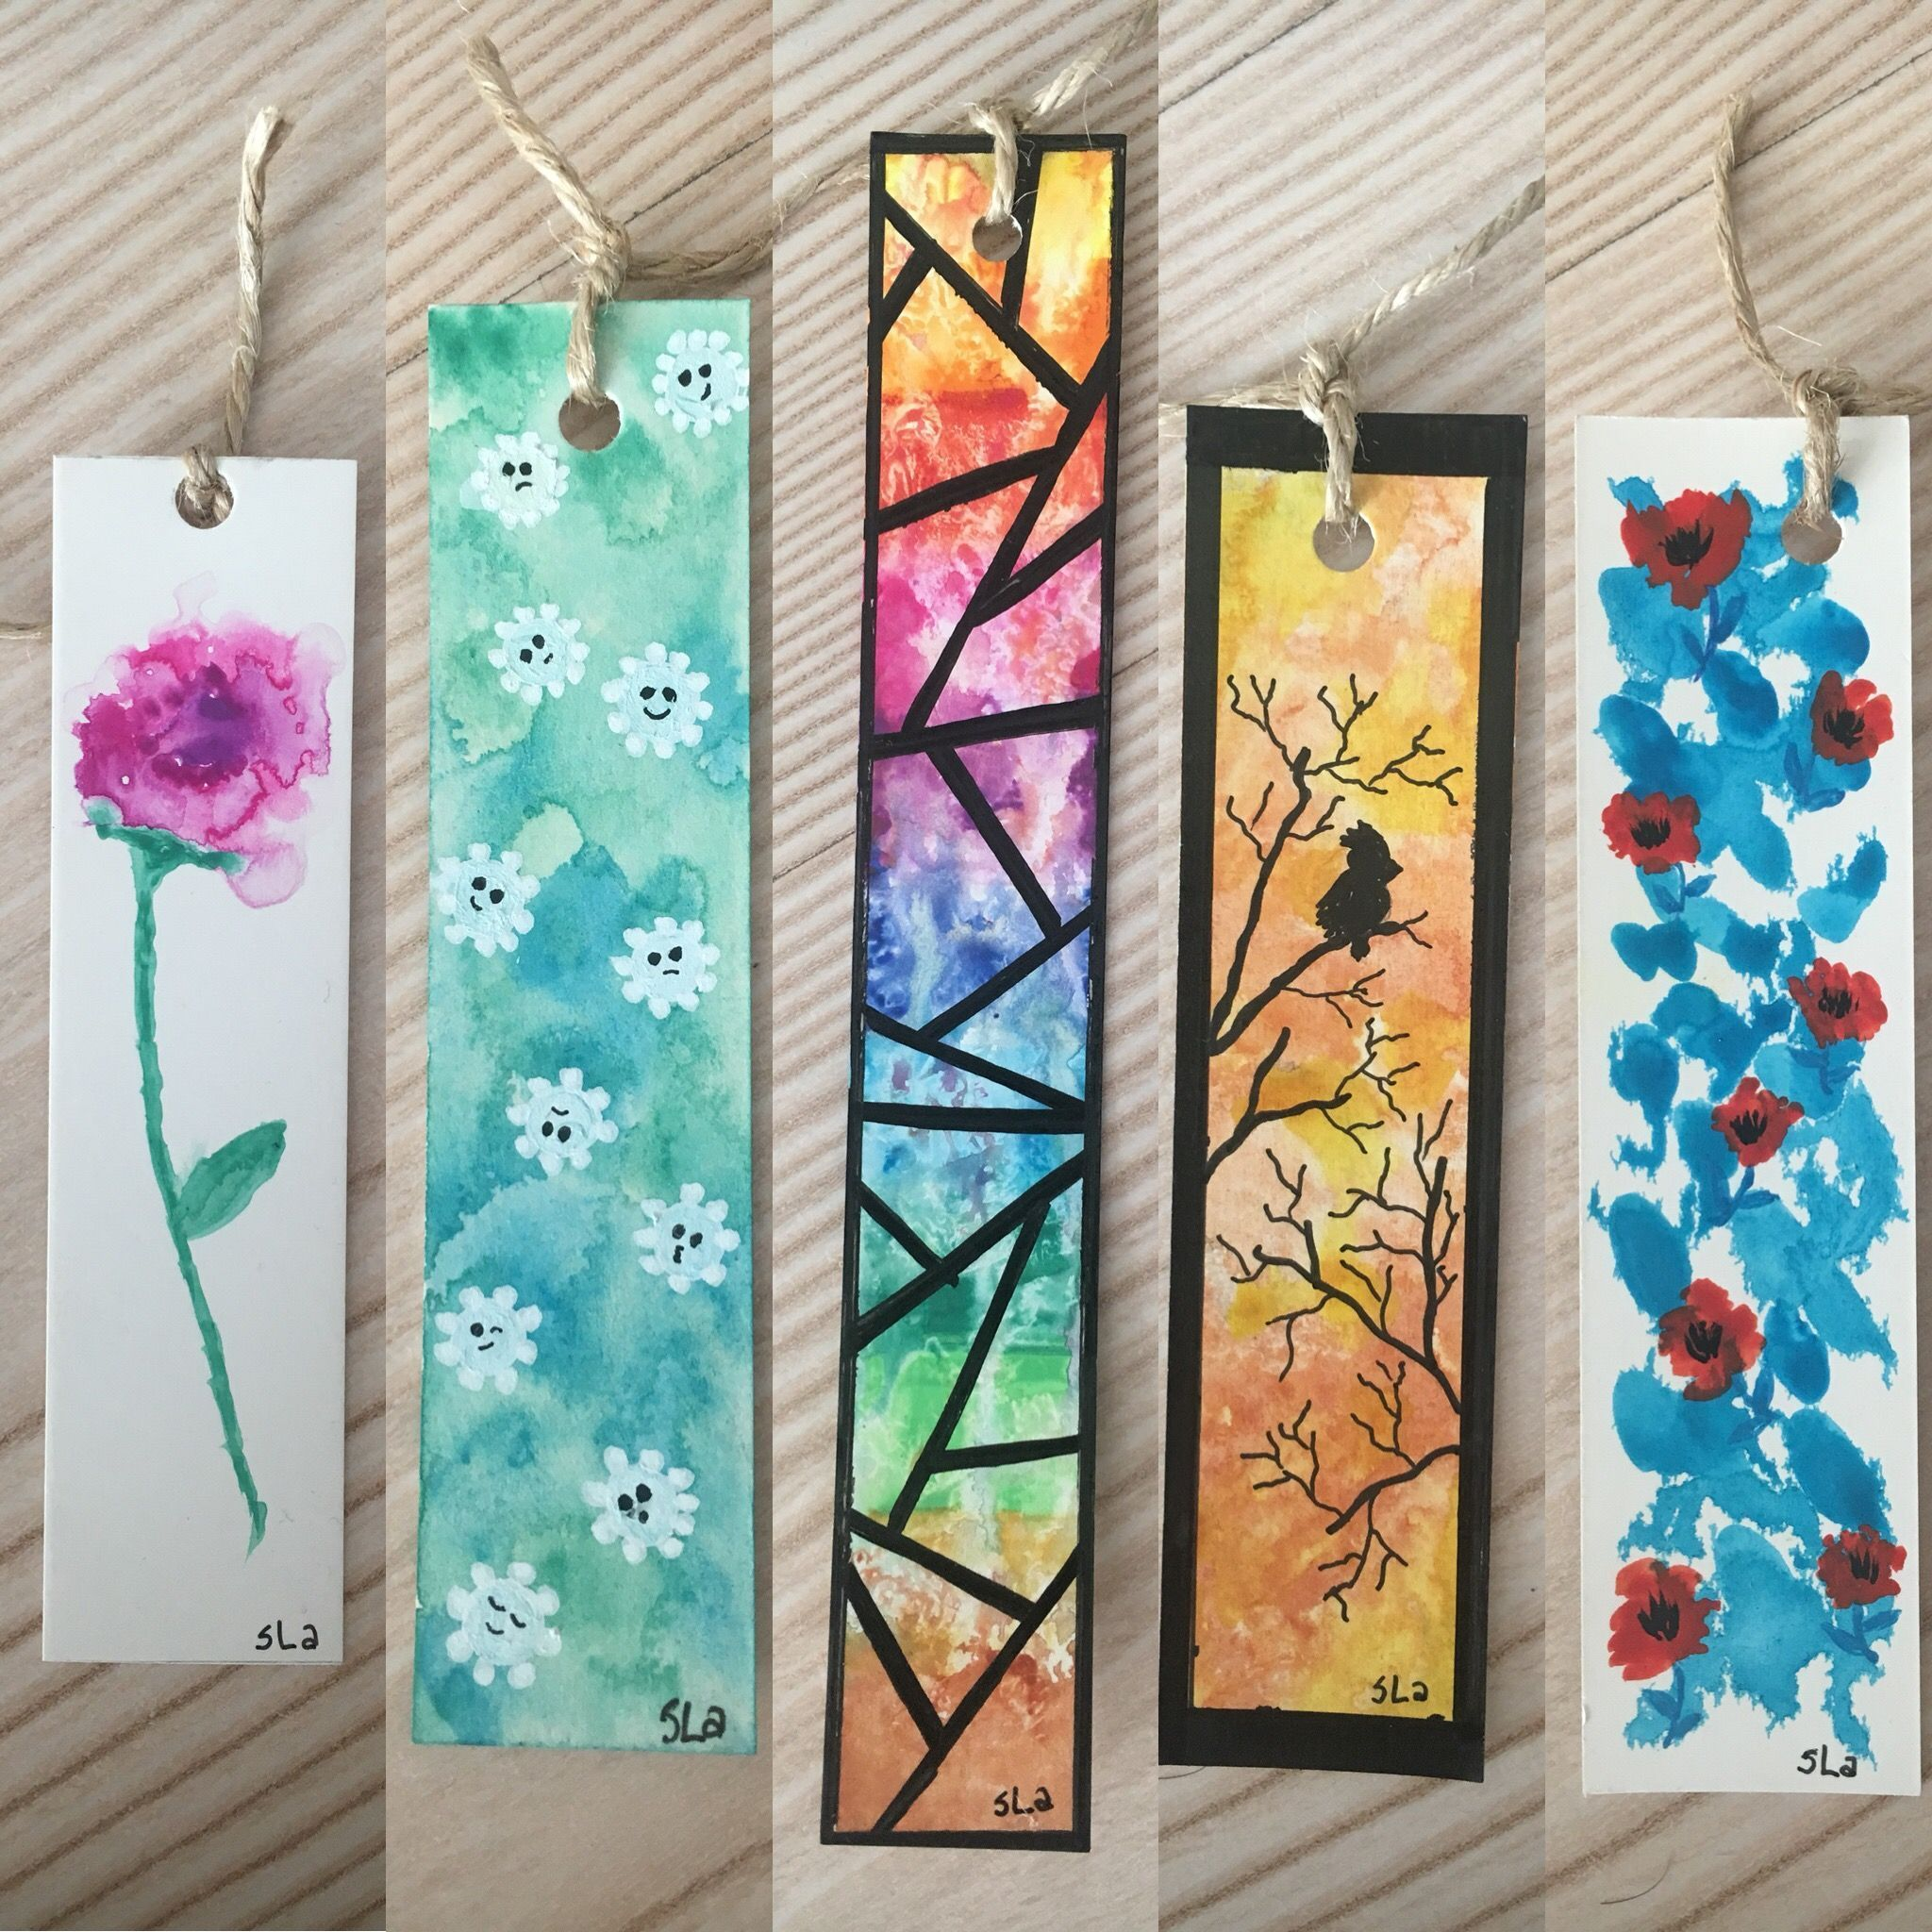 Pin By Peggy Creswell On Bookmarks Handmade Bookmarks Diy Watercolor Bookmarks Bookmarks Handmade